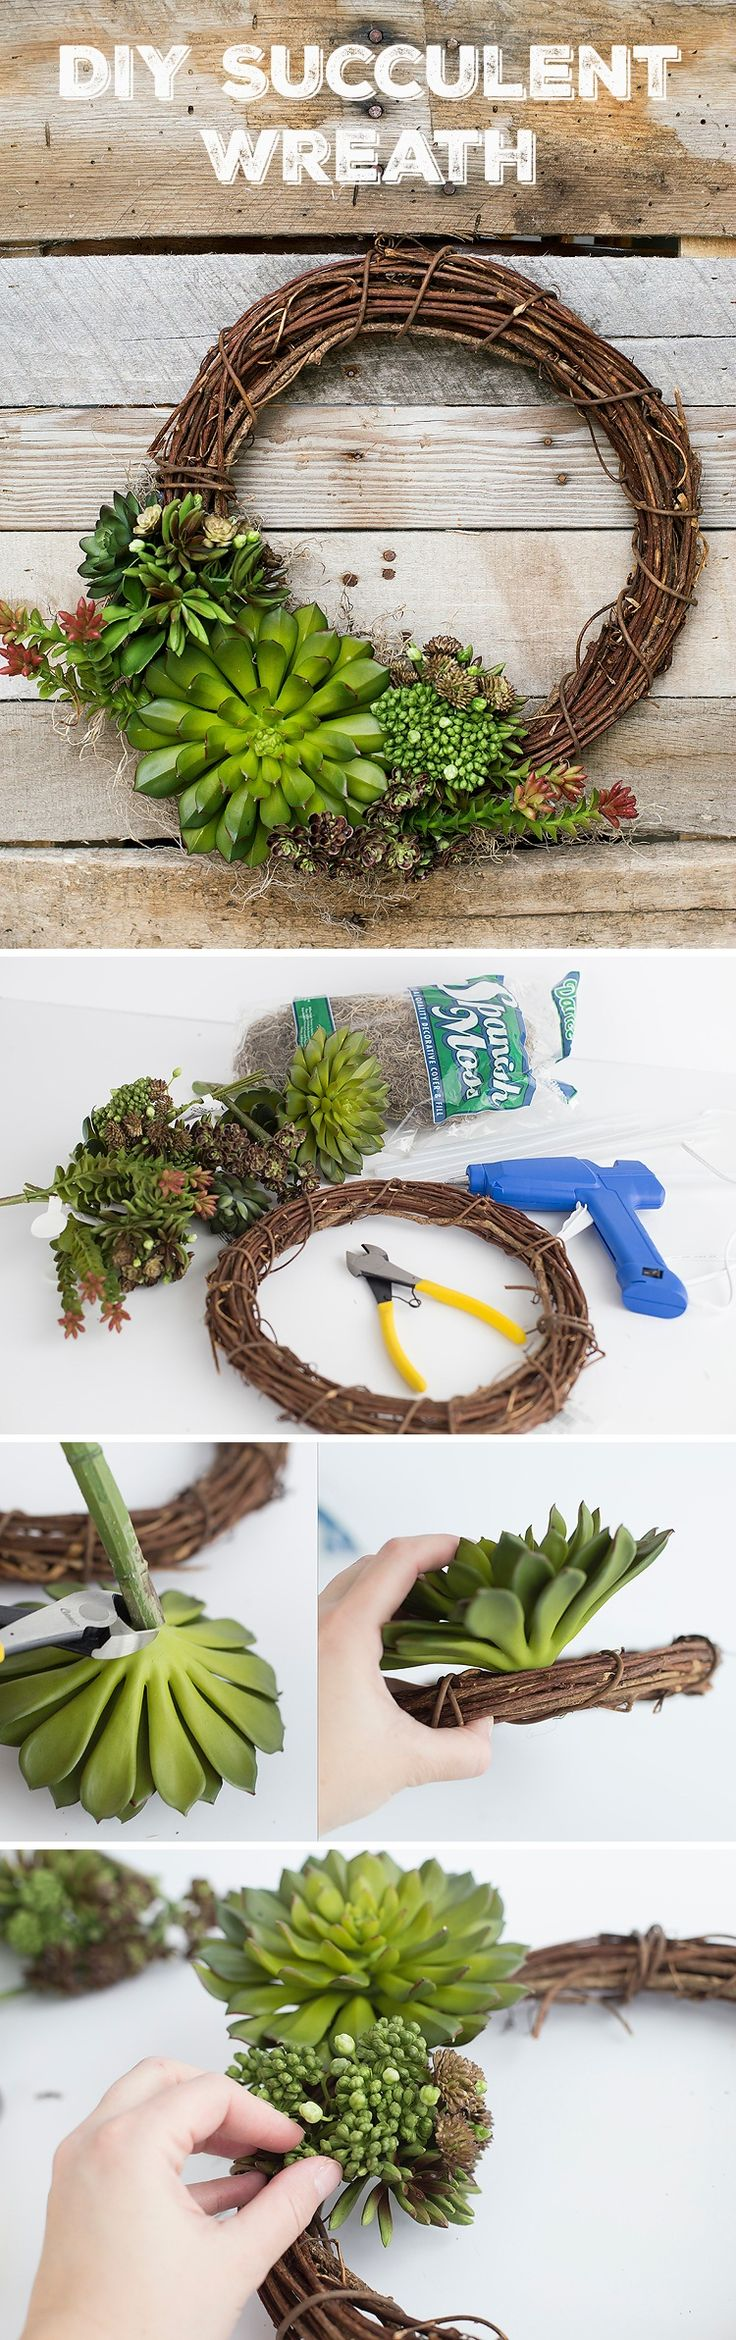 Spring Succulent DIY Wreath // This succulent DIY wreath is simple to make and captures the spirit of spring renewal perfectly. Make your own succulent wreath with a few supplies!